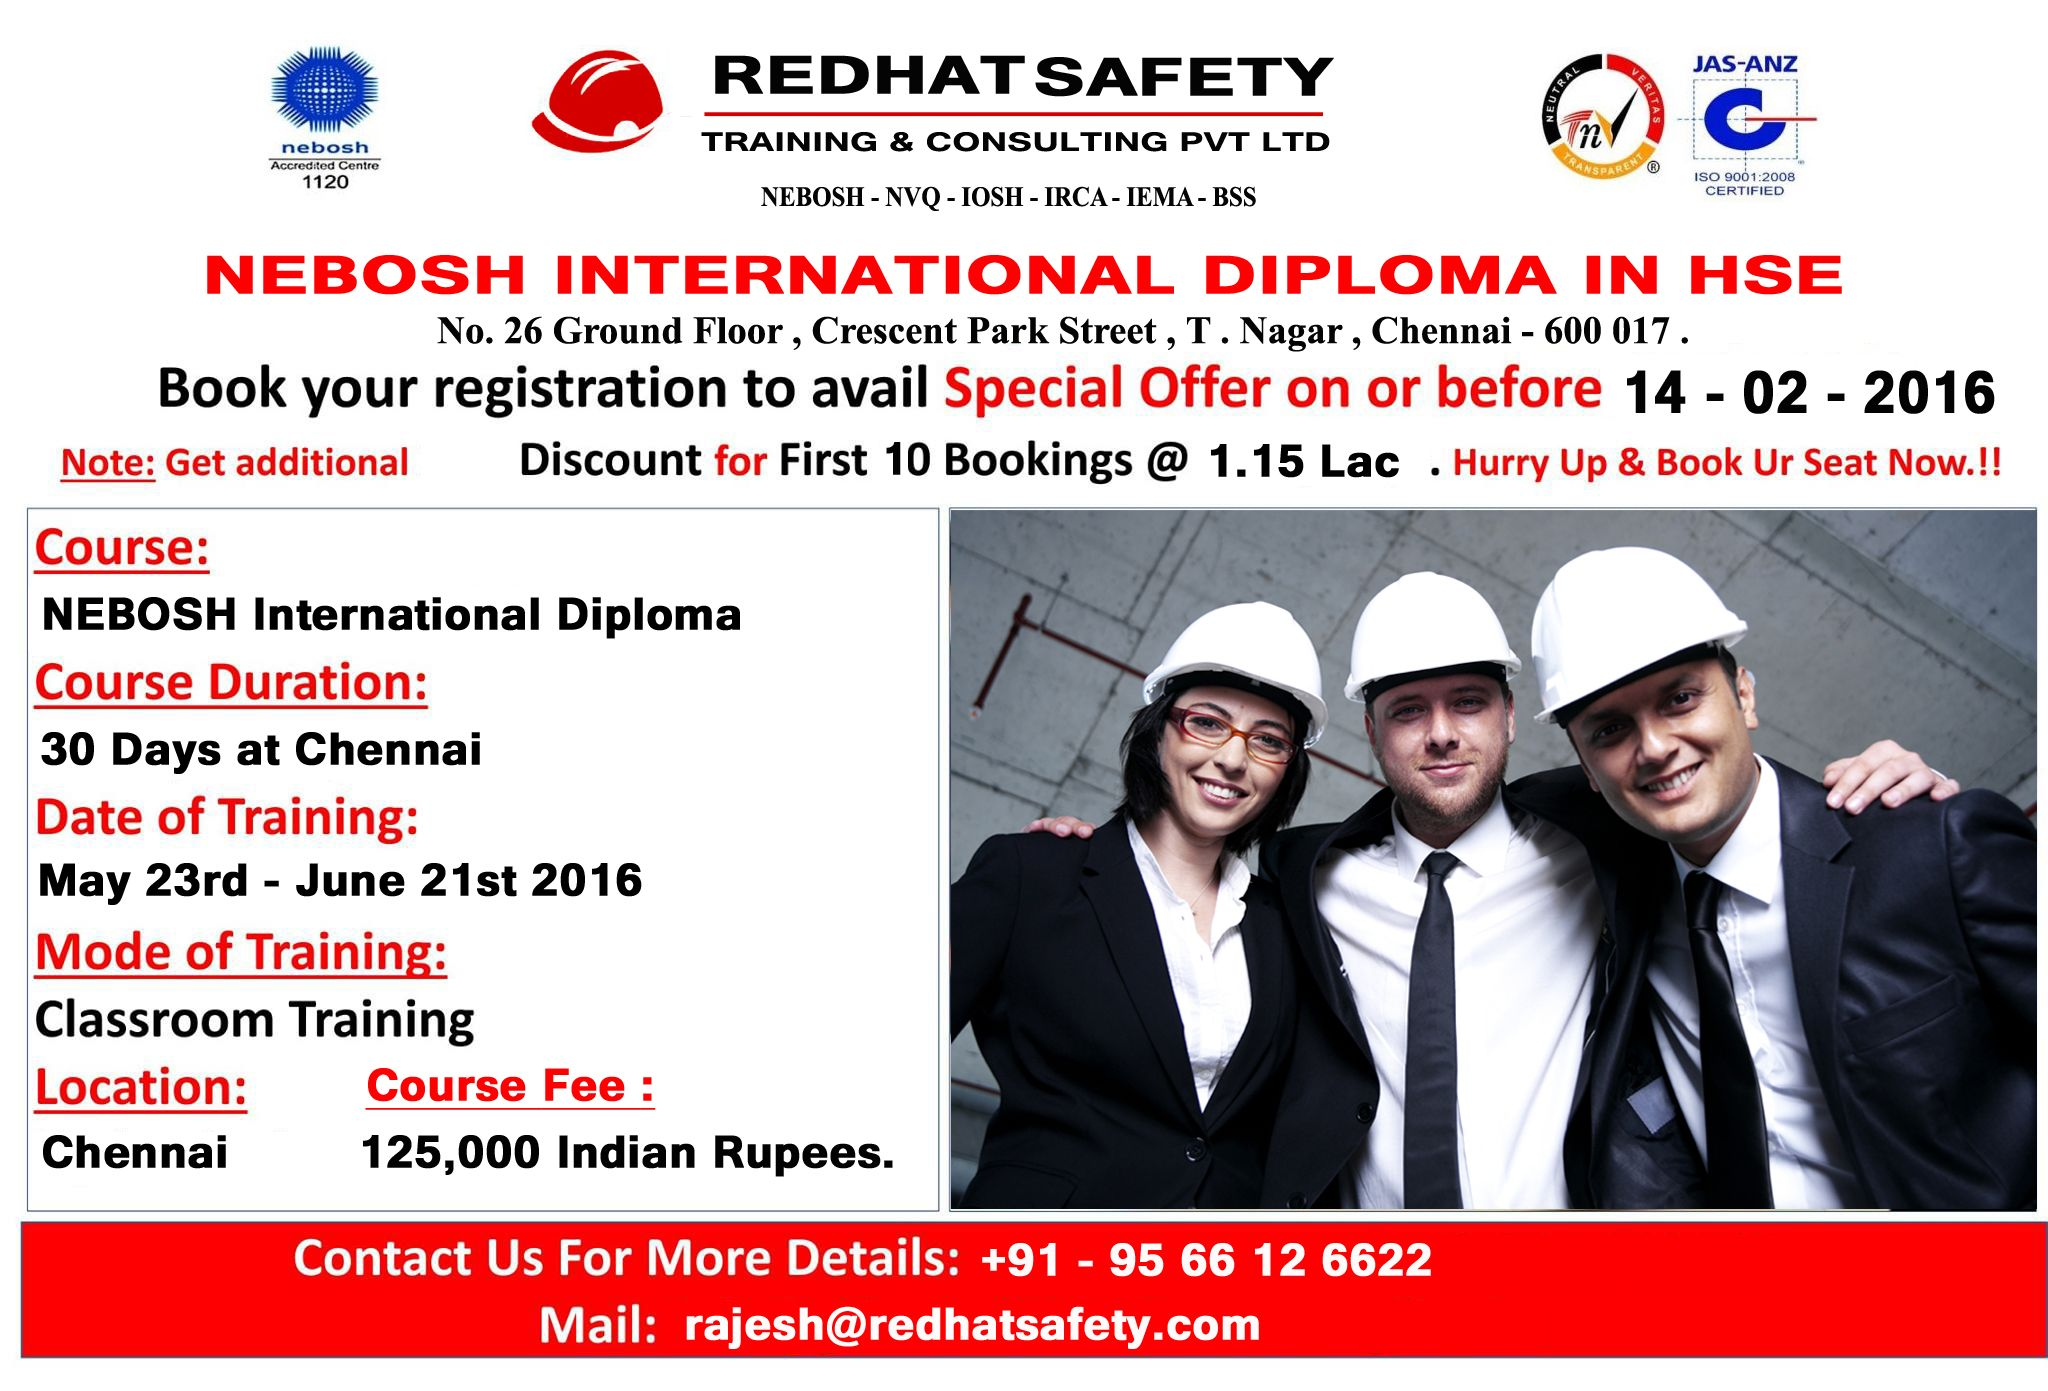 We Are Offering The NEBOSH International Diploma Level 6 In Lowest Price As An Offer Course Name IDIP Fee 125000 Indian Rupees